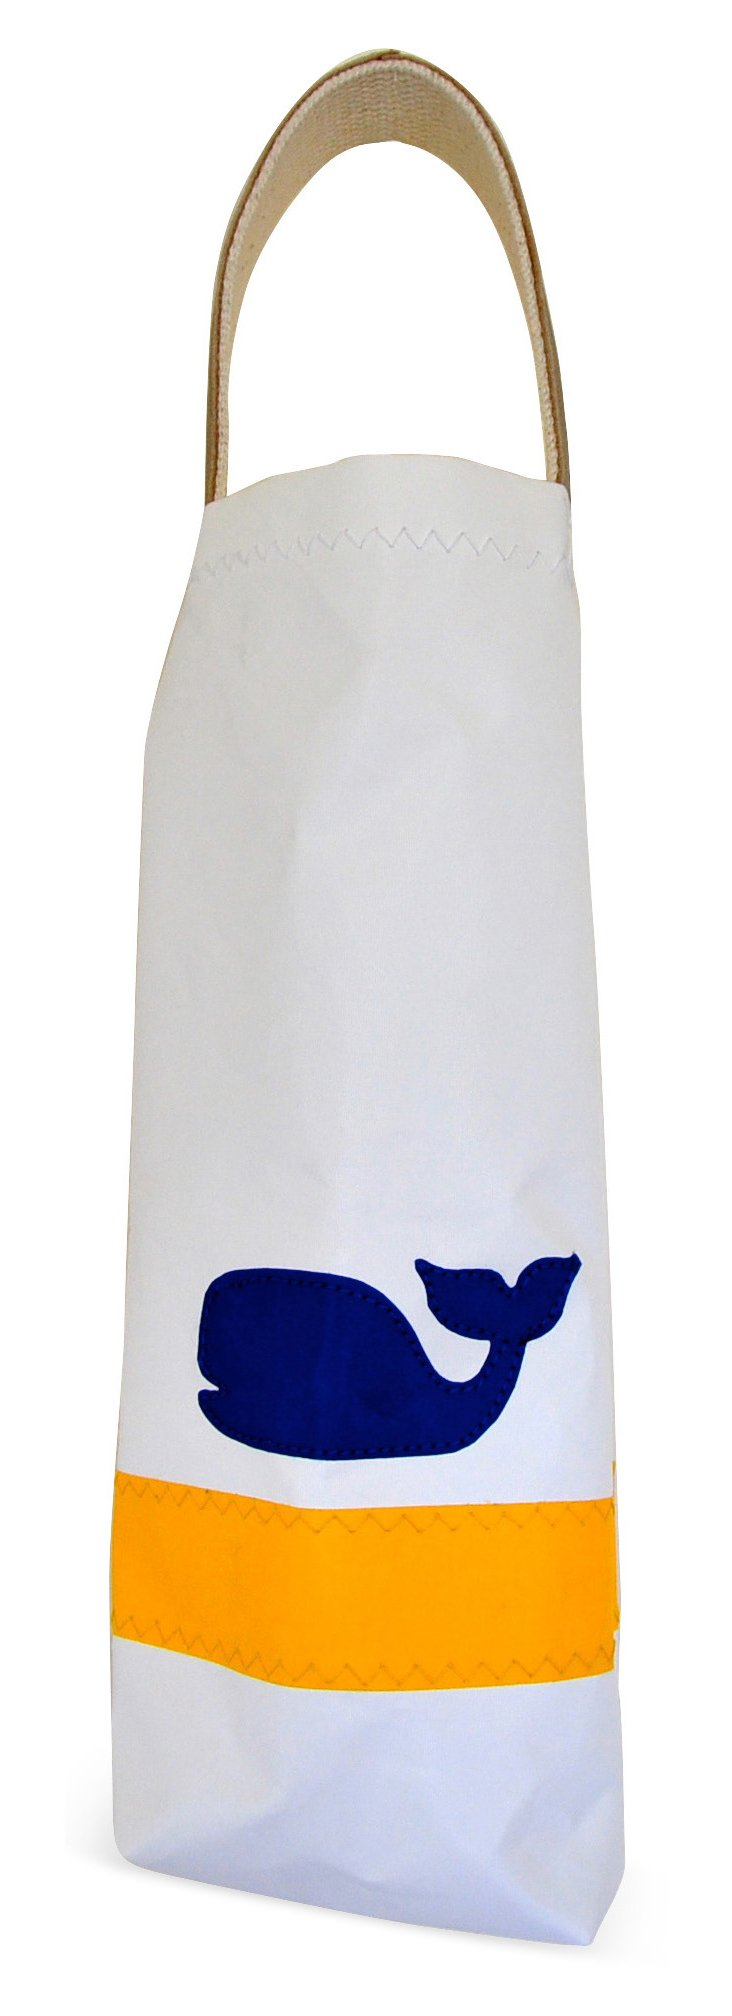 Whale Wine Bag w/ Leather Handle, White